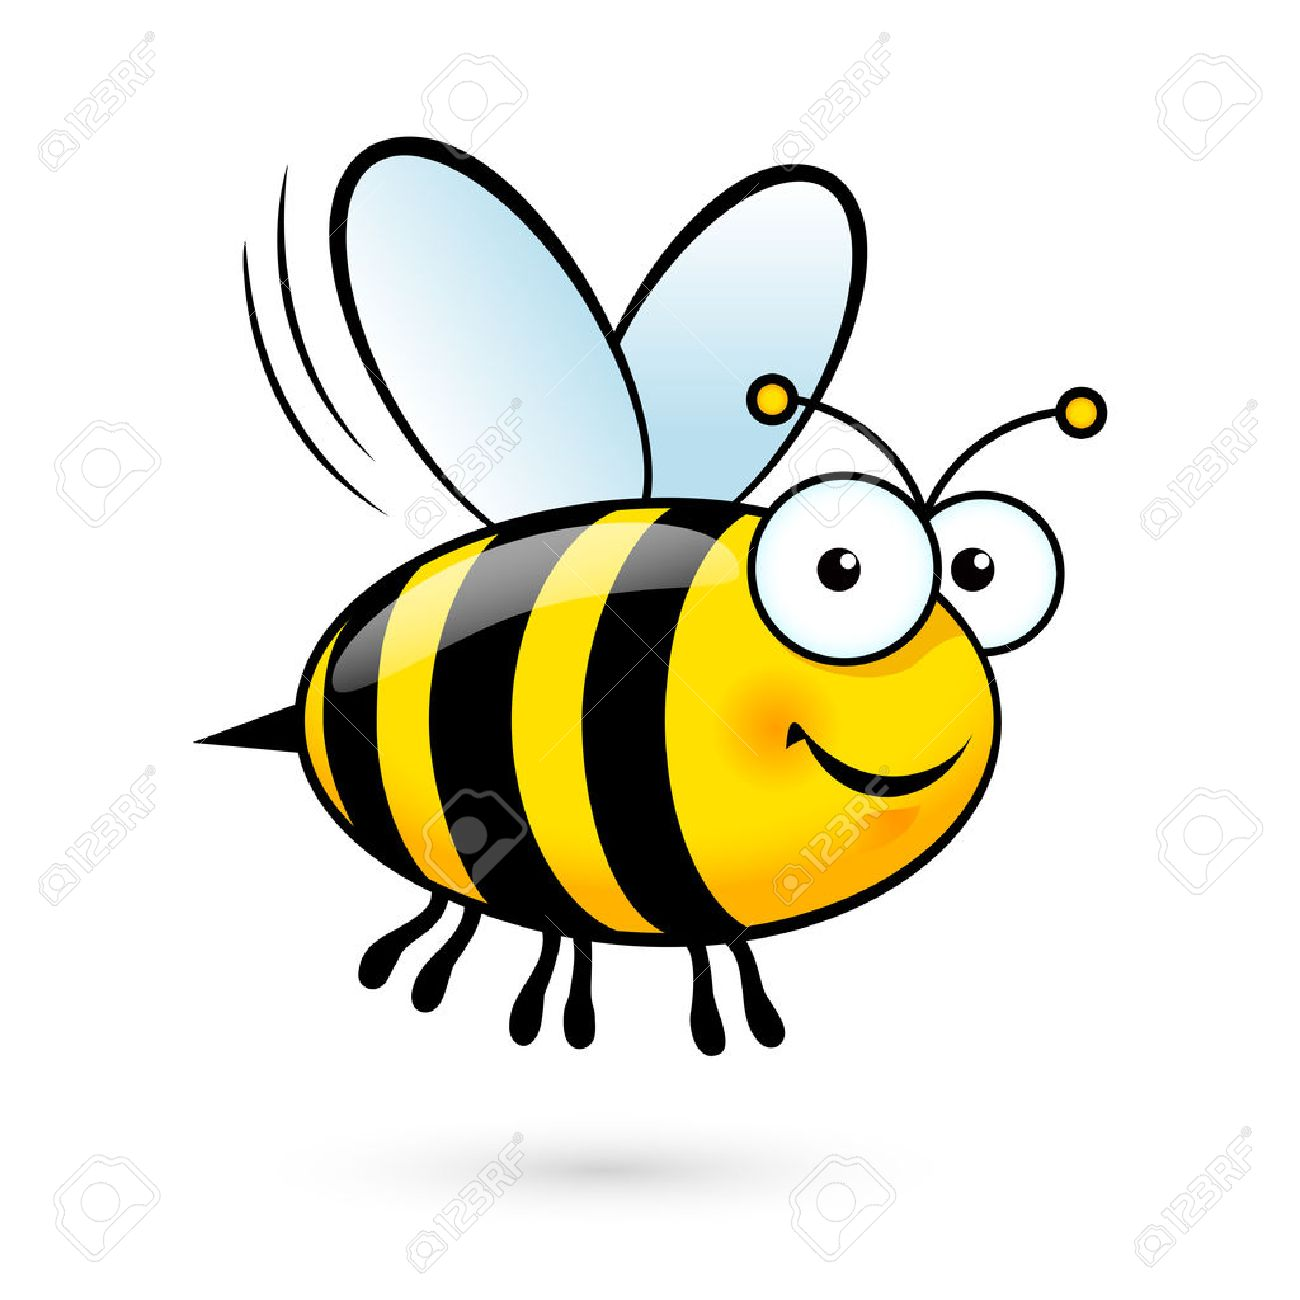 Illustration of a Friendly Cute Bee Flying and Smiling Stock Vector - 52984920